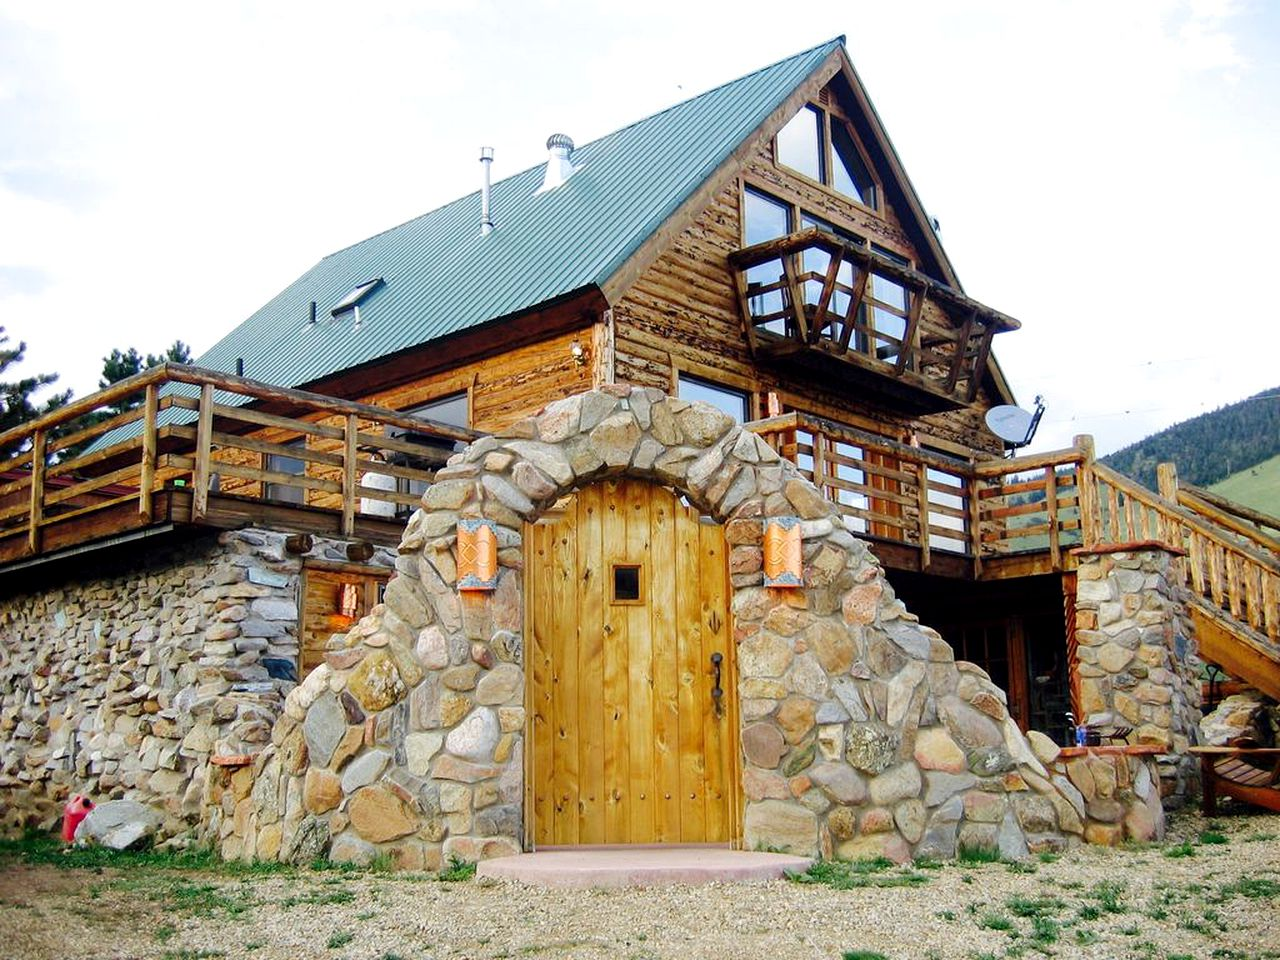 Cottages (Eagle Nest, New Mexico, United States)